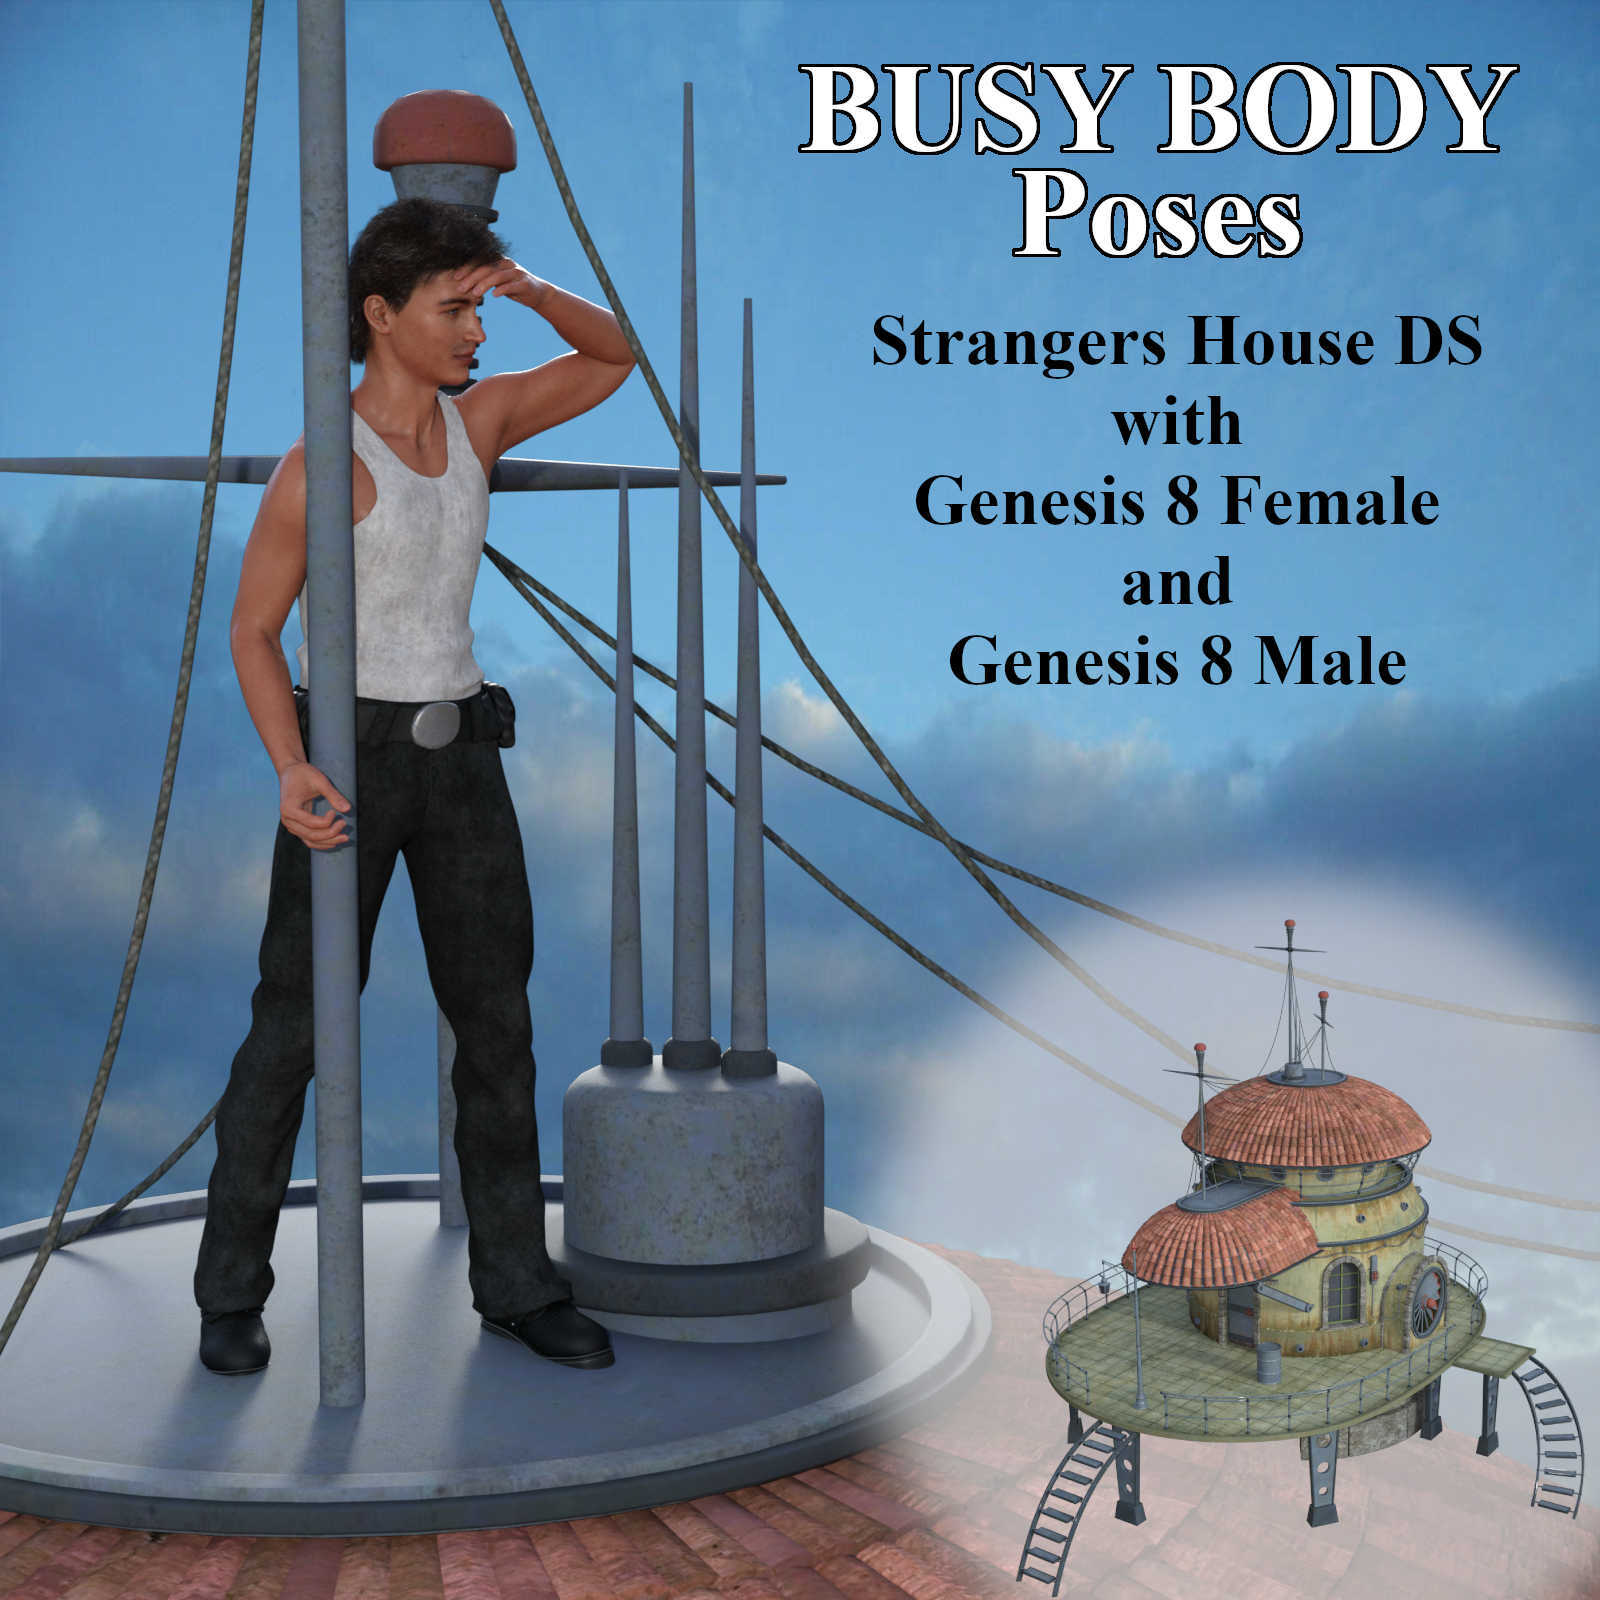 BUSY BODY Pose Set for Strangers House DS with Genesis 8 Female / Male (G8F/G8M) by Winterbrose